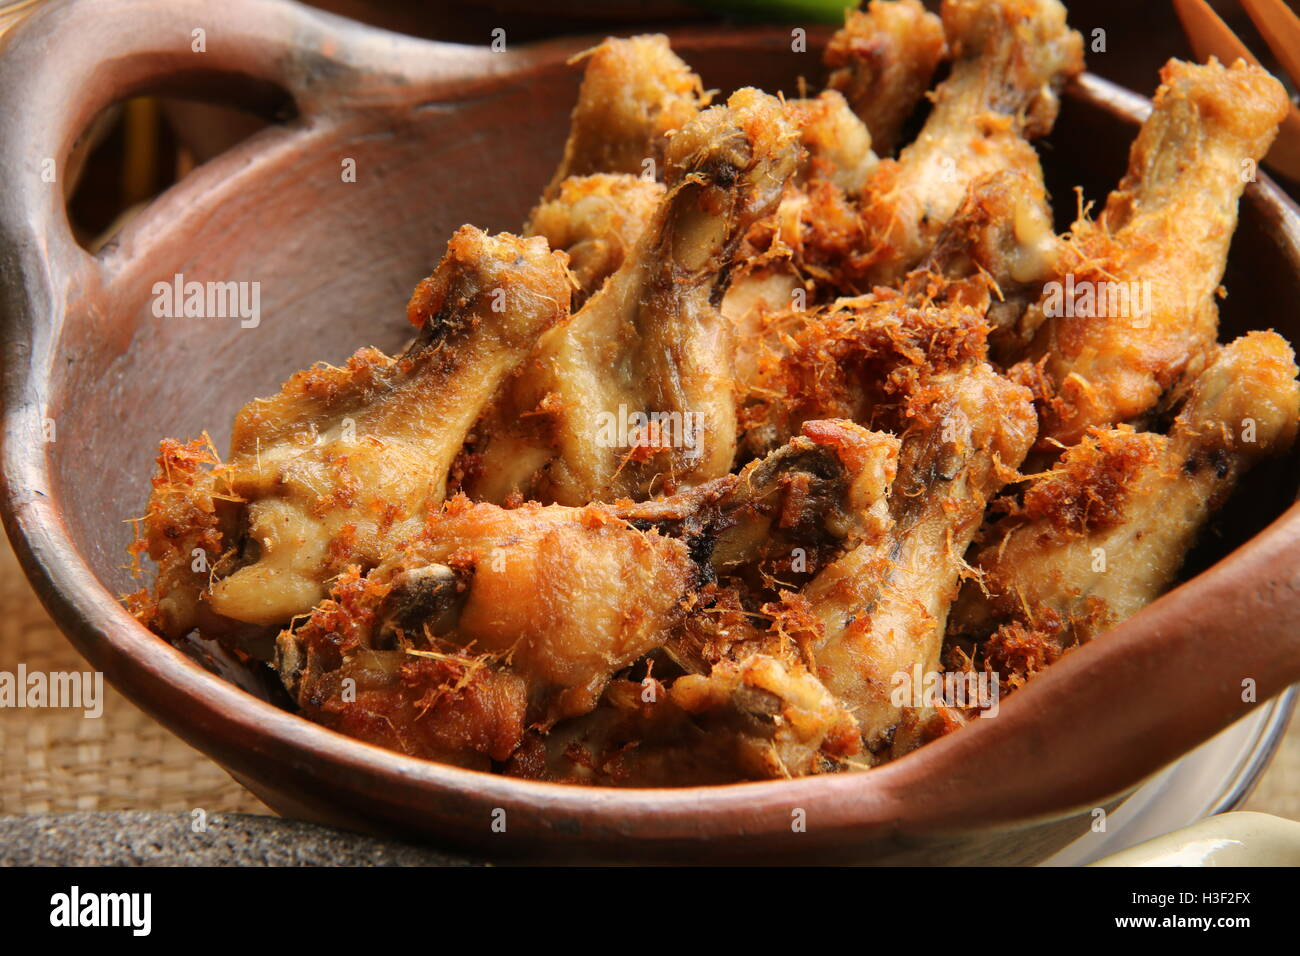 Fried chicken drummettes cooked with traditional Indonesian recipe. Served in an earthenware wok. - Stock Image